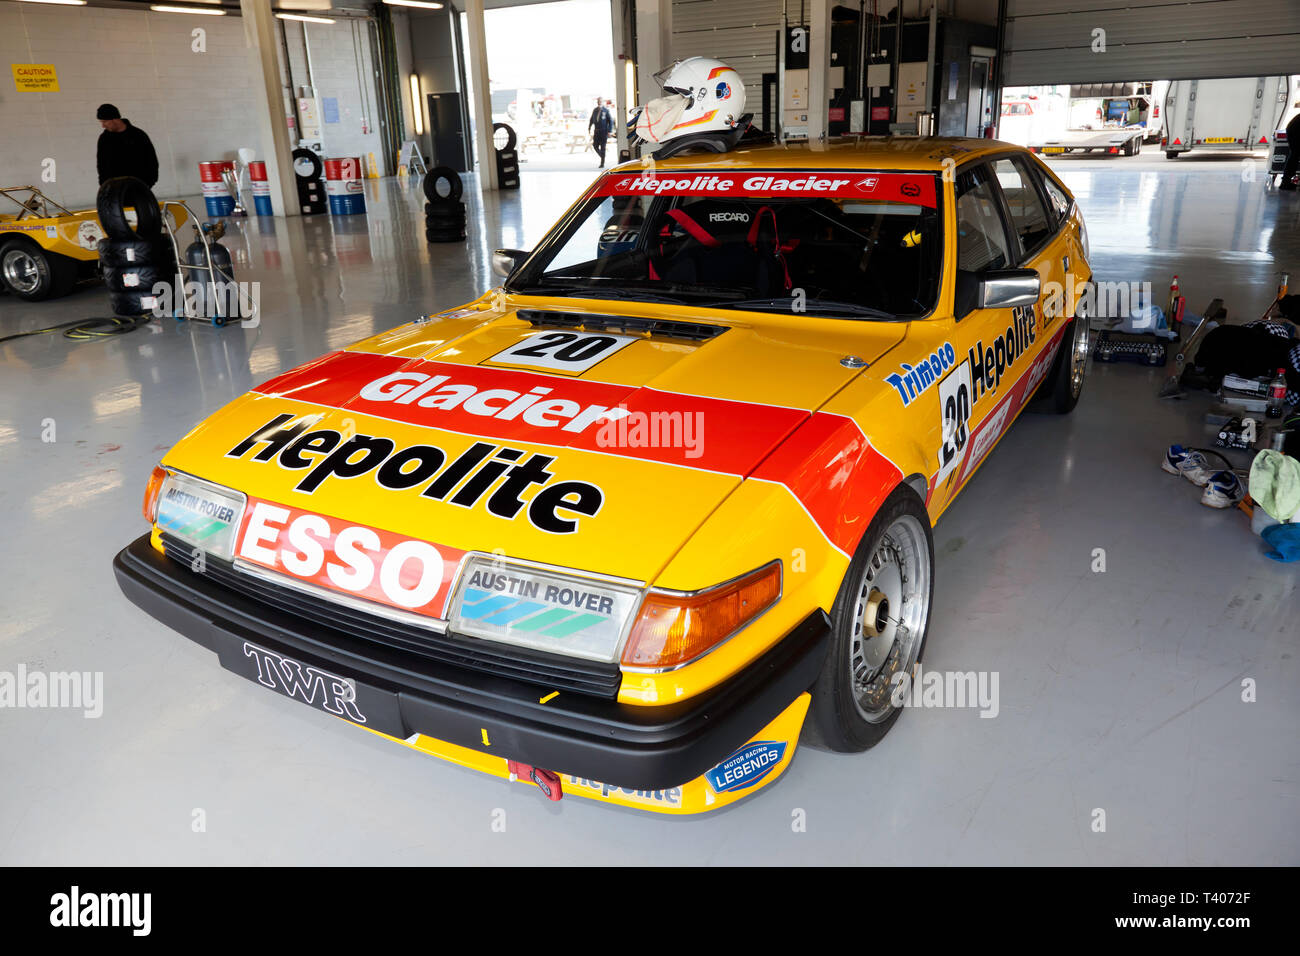 Ken Clarke's  1983 Yellow and Red Rover SD1 Vitesse  Historic Touring Car, in the International Pit Garage at the 2019 Silverstone Classic Media Day - Stock Image